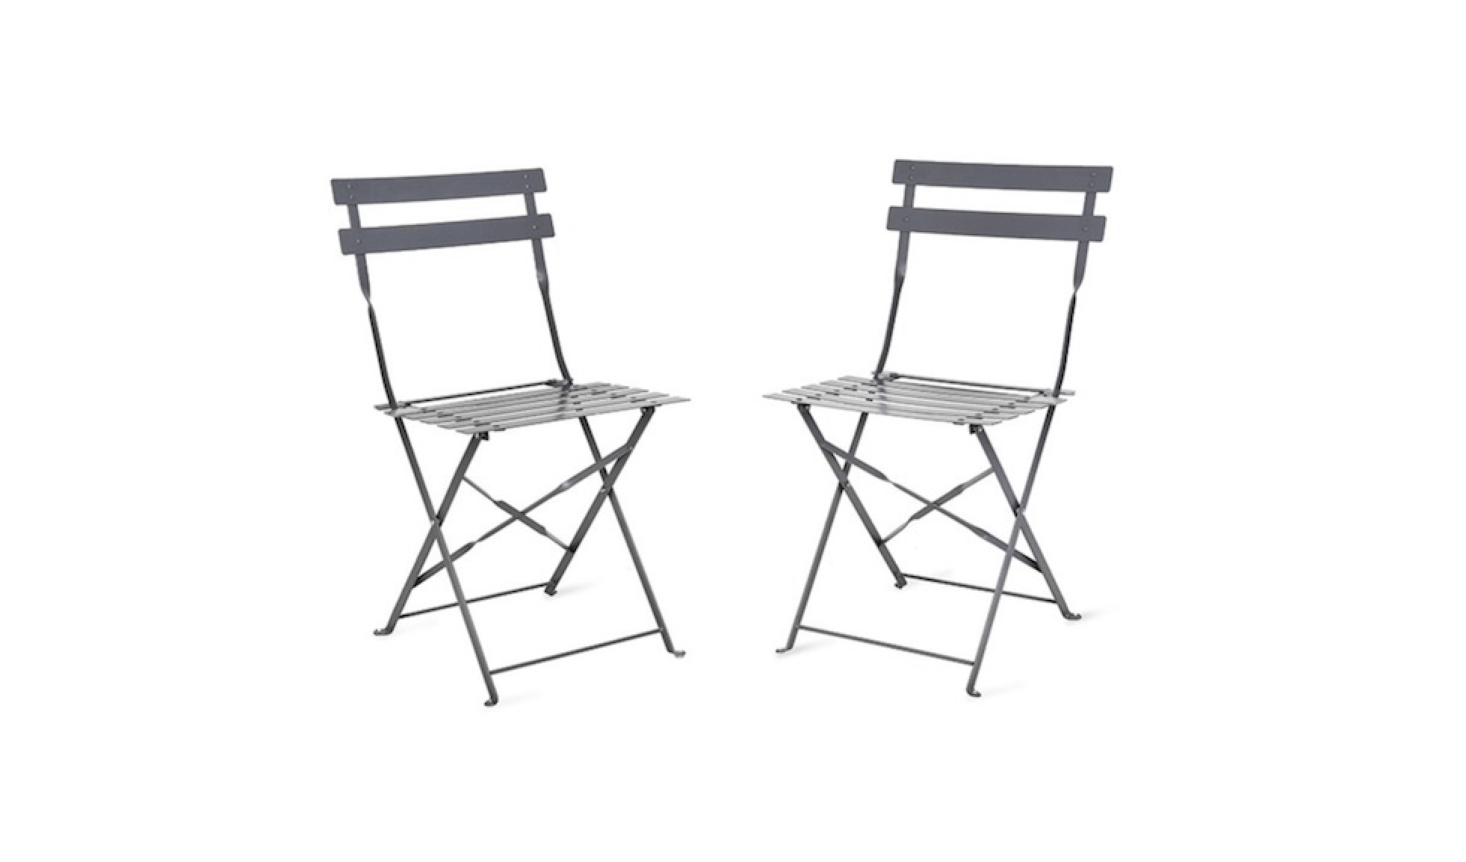 A set of two steel Bistro Chairs in charcoal (also available in three other colors) is £50 from Garden Trading.